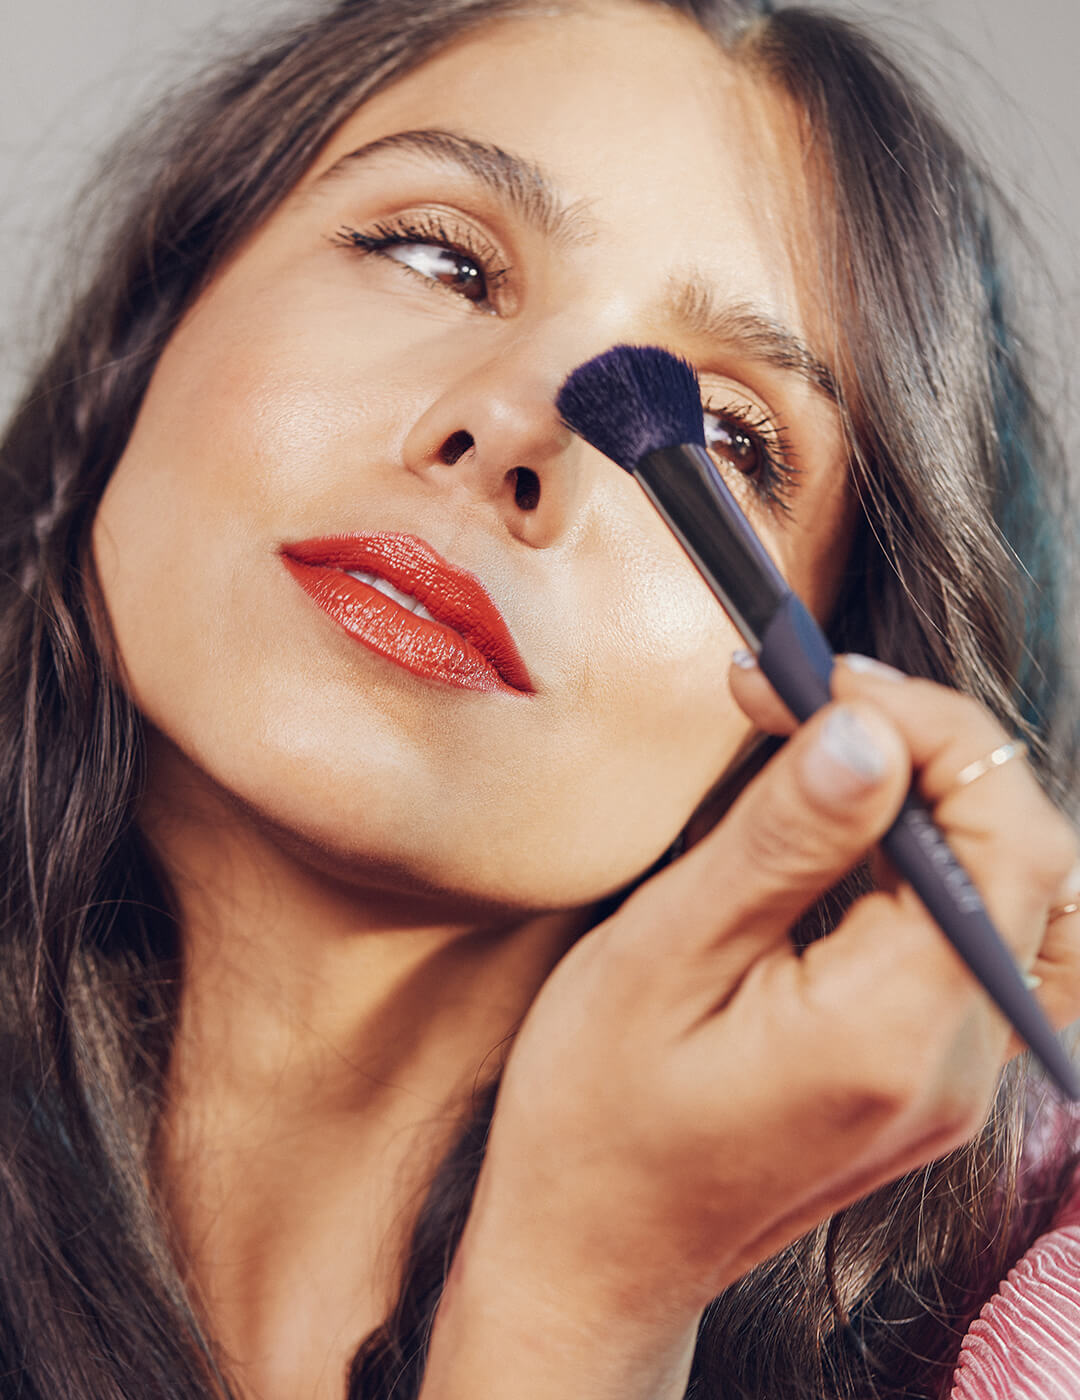 An image of a model touching her nose with a makeup brush